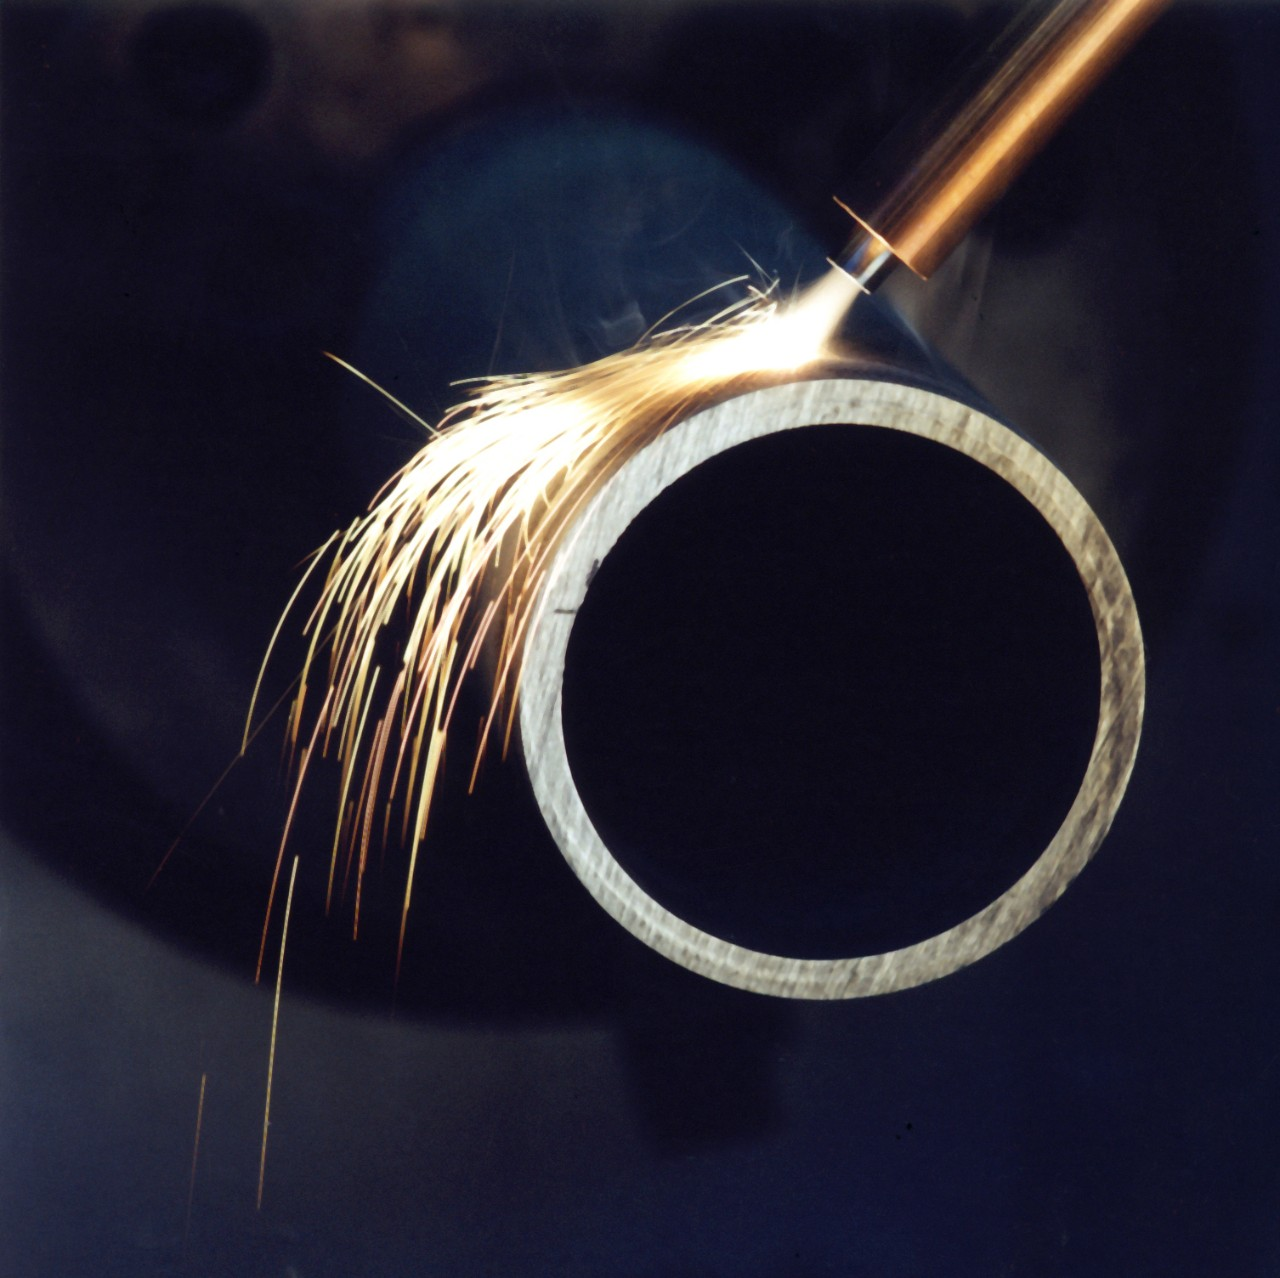 Processing of a workpiece by laser